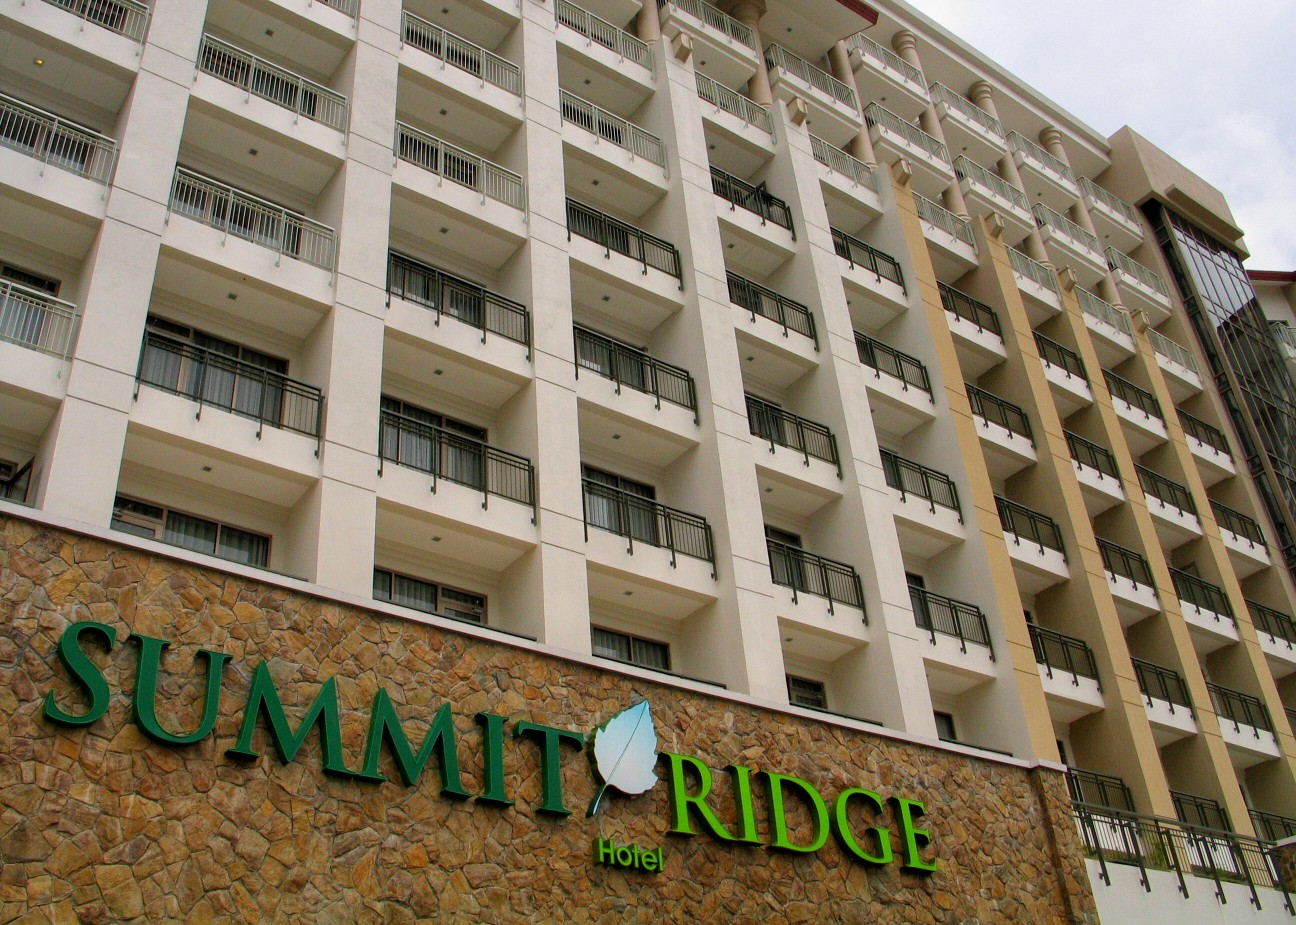 The world renowned Summit Ridge Hotel is just your neighborhood at Cool Suites at Wind Residences.